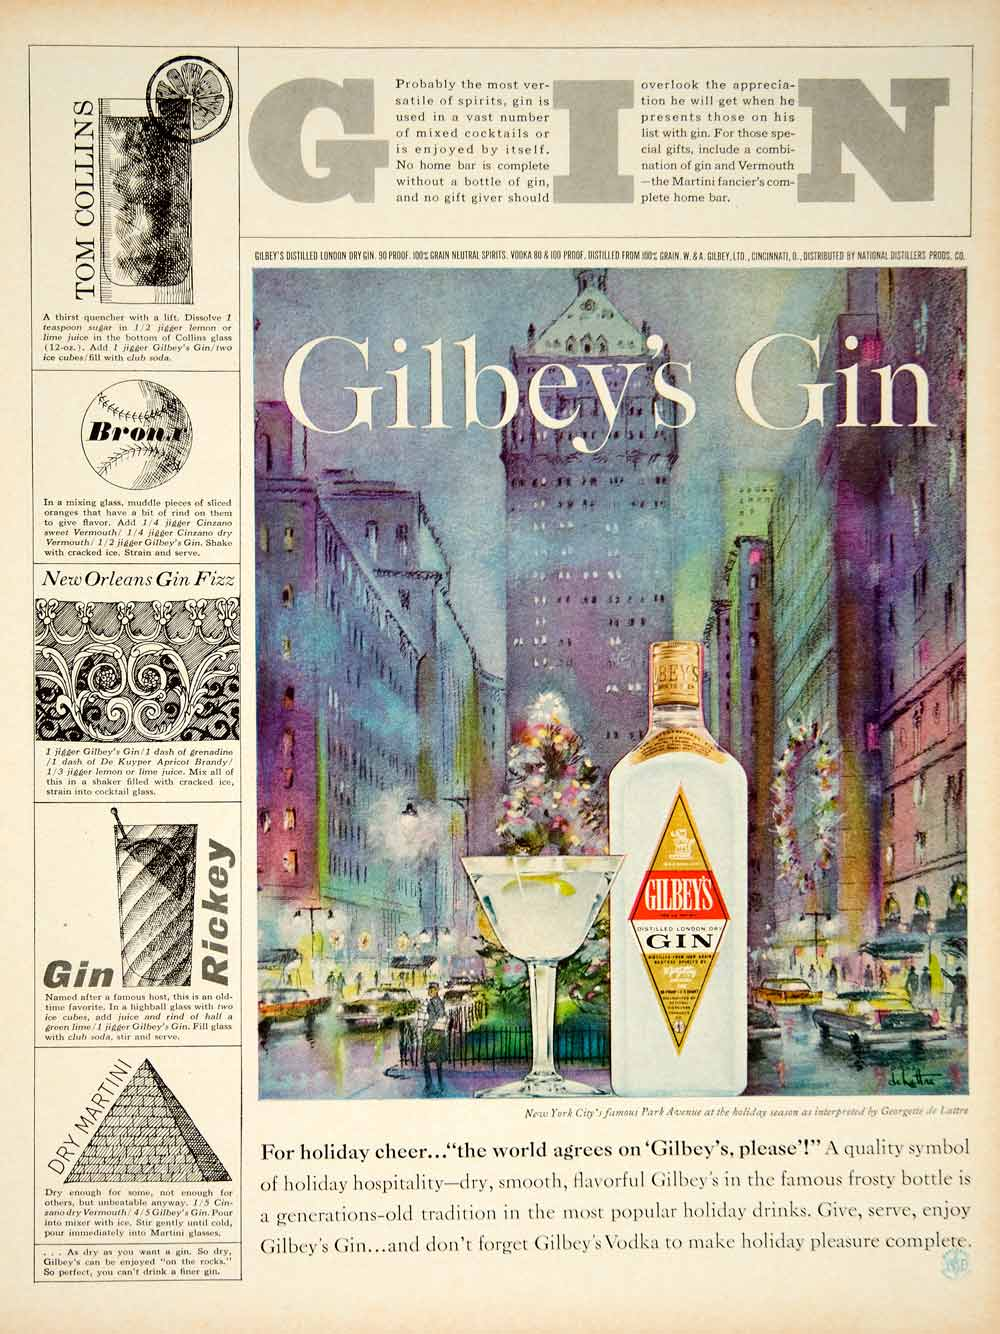 1962 Ad Gilbey's Gin Drink Cocktail Recipes Park Avenue NYC Georgette de YMM5